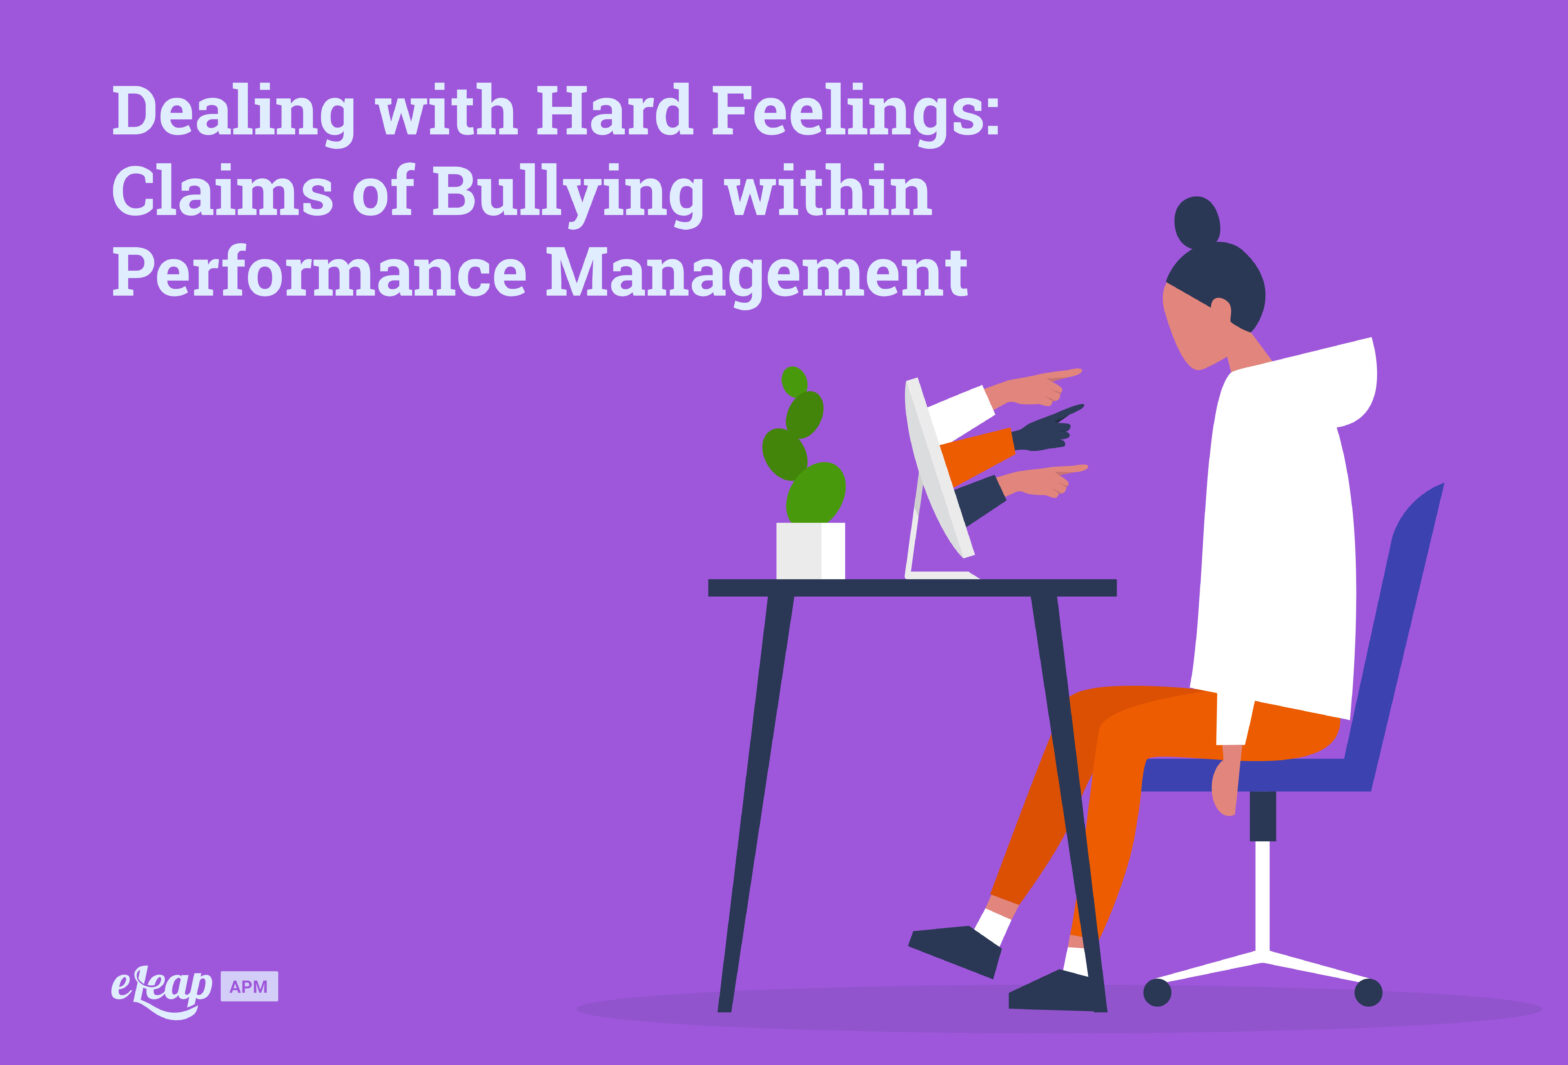 Dealing with Hard Feelings: Claims of Bullying within Performance Management